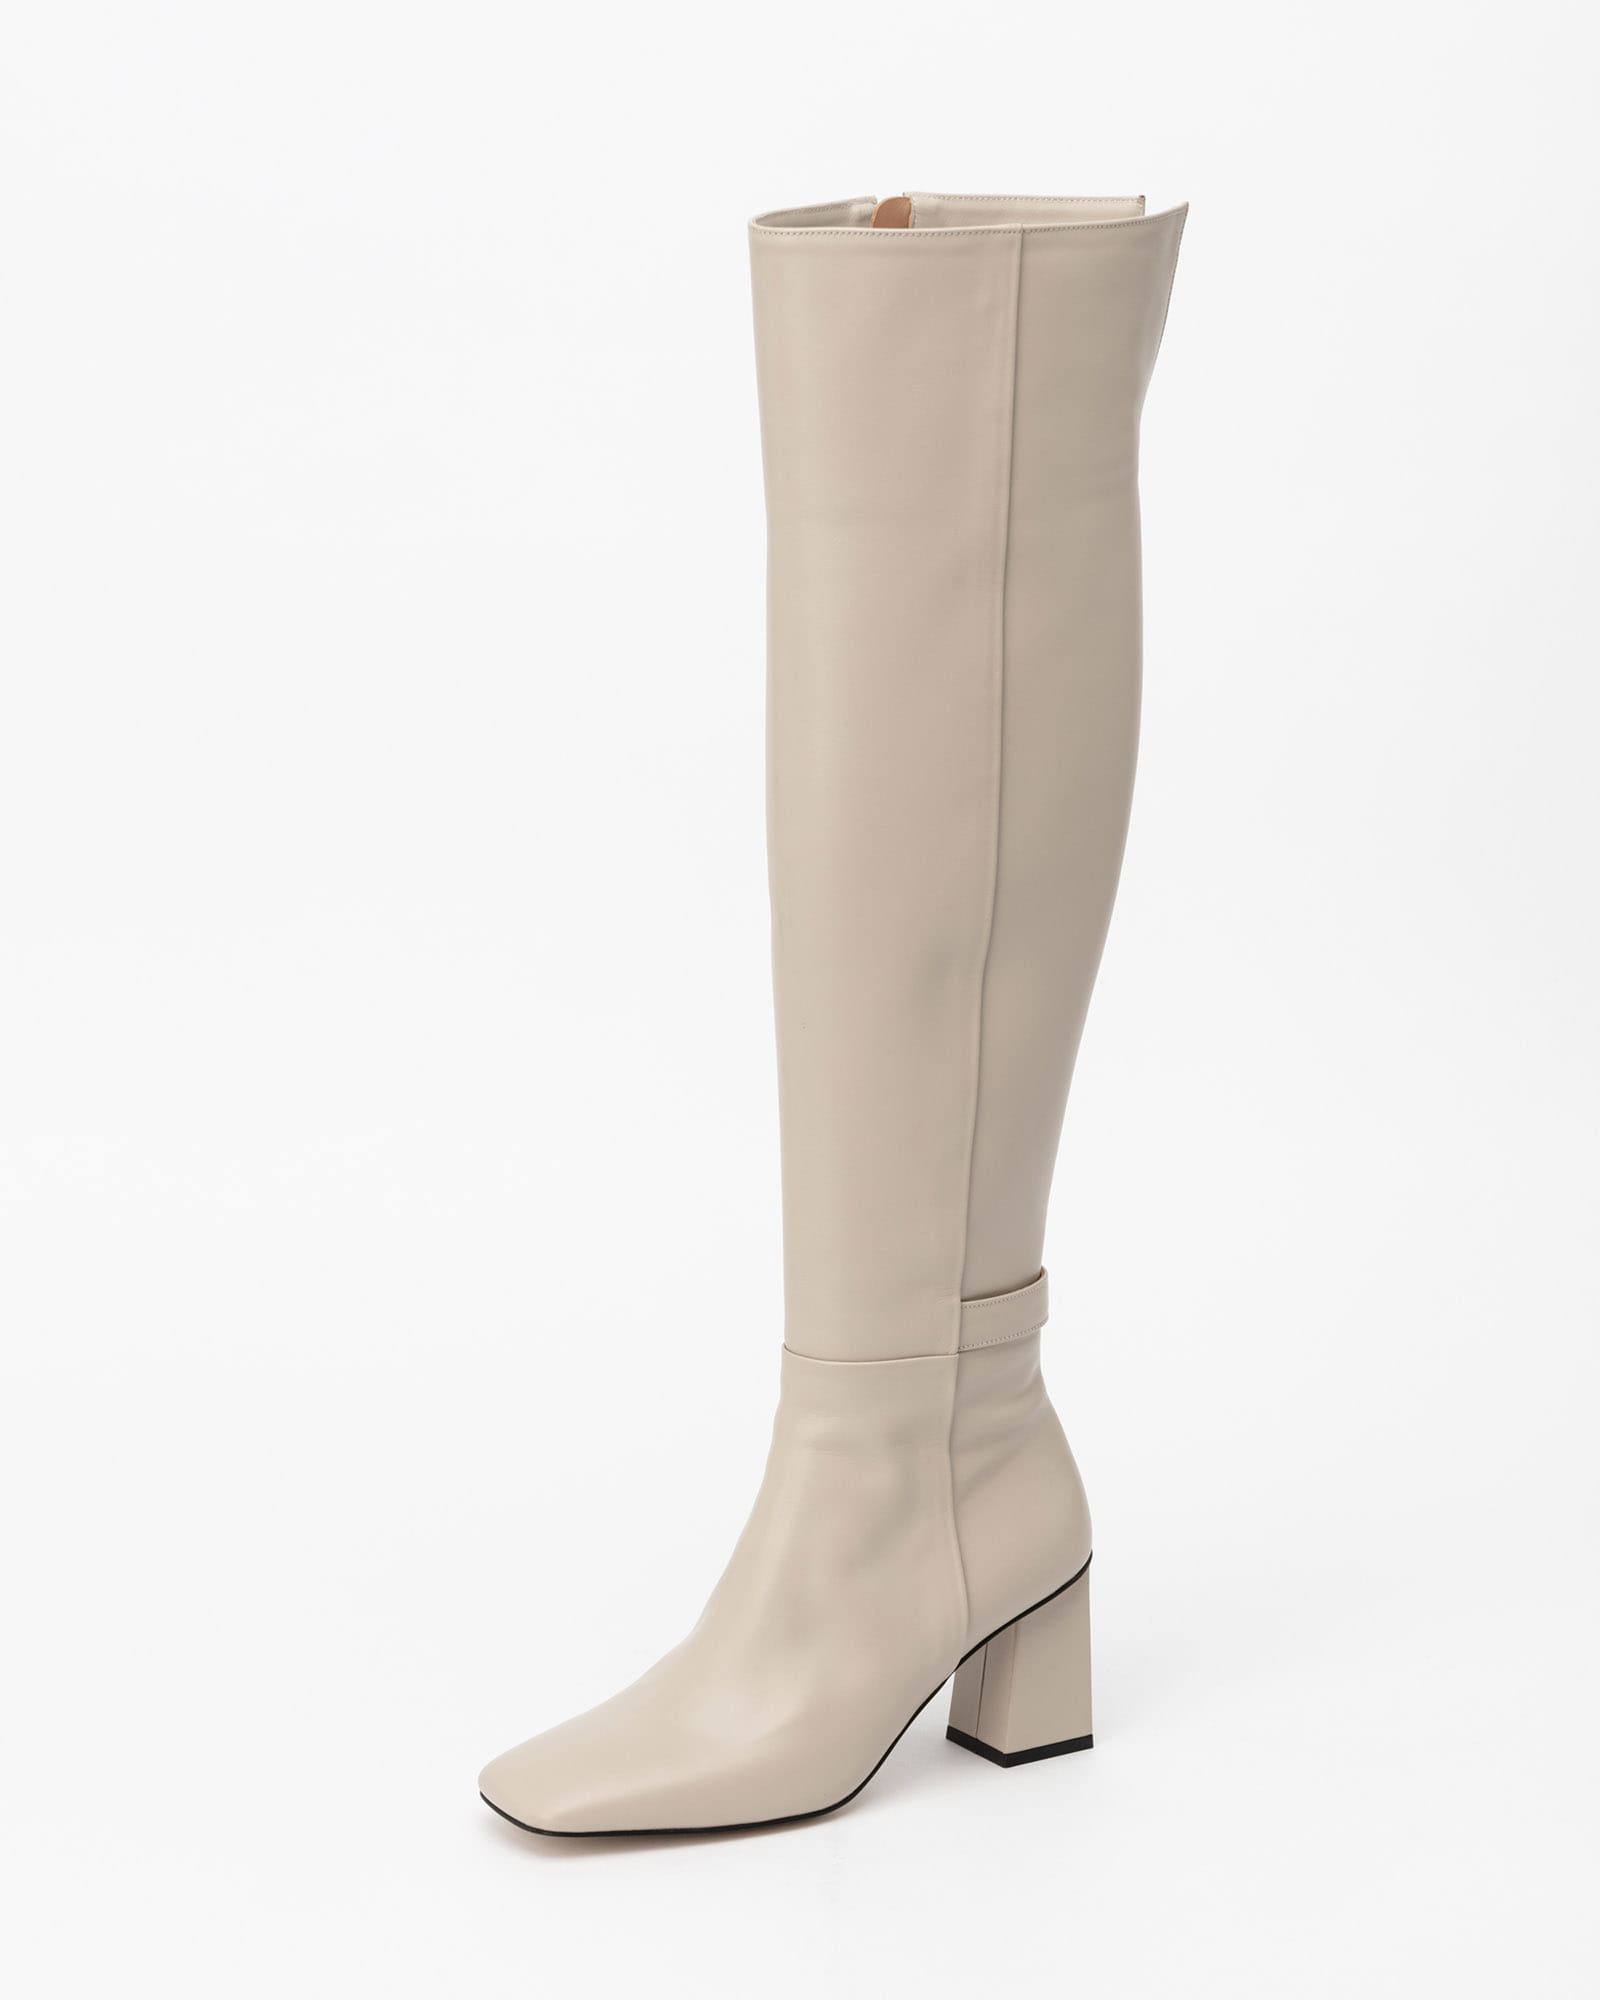 Armure Over-the-Knee Boots in Taupe Ivory